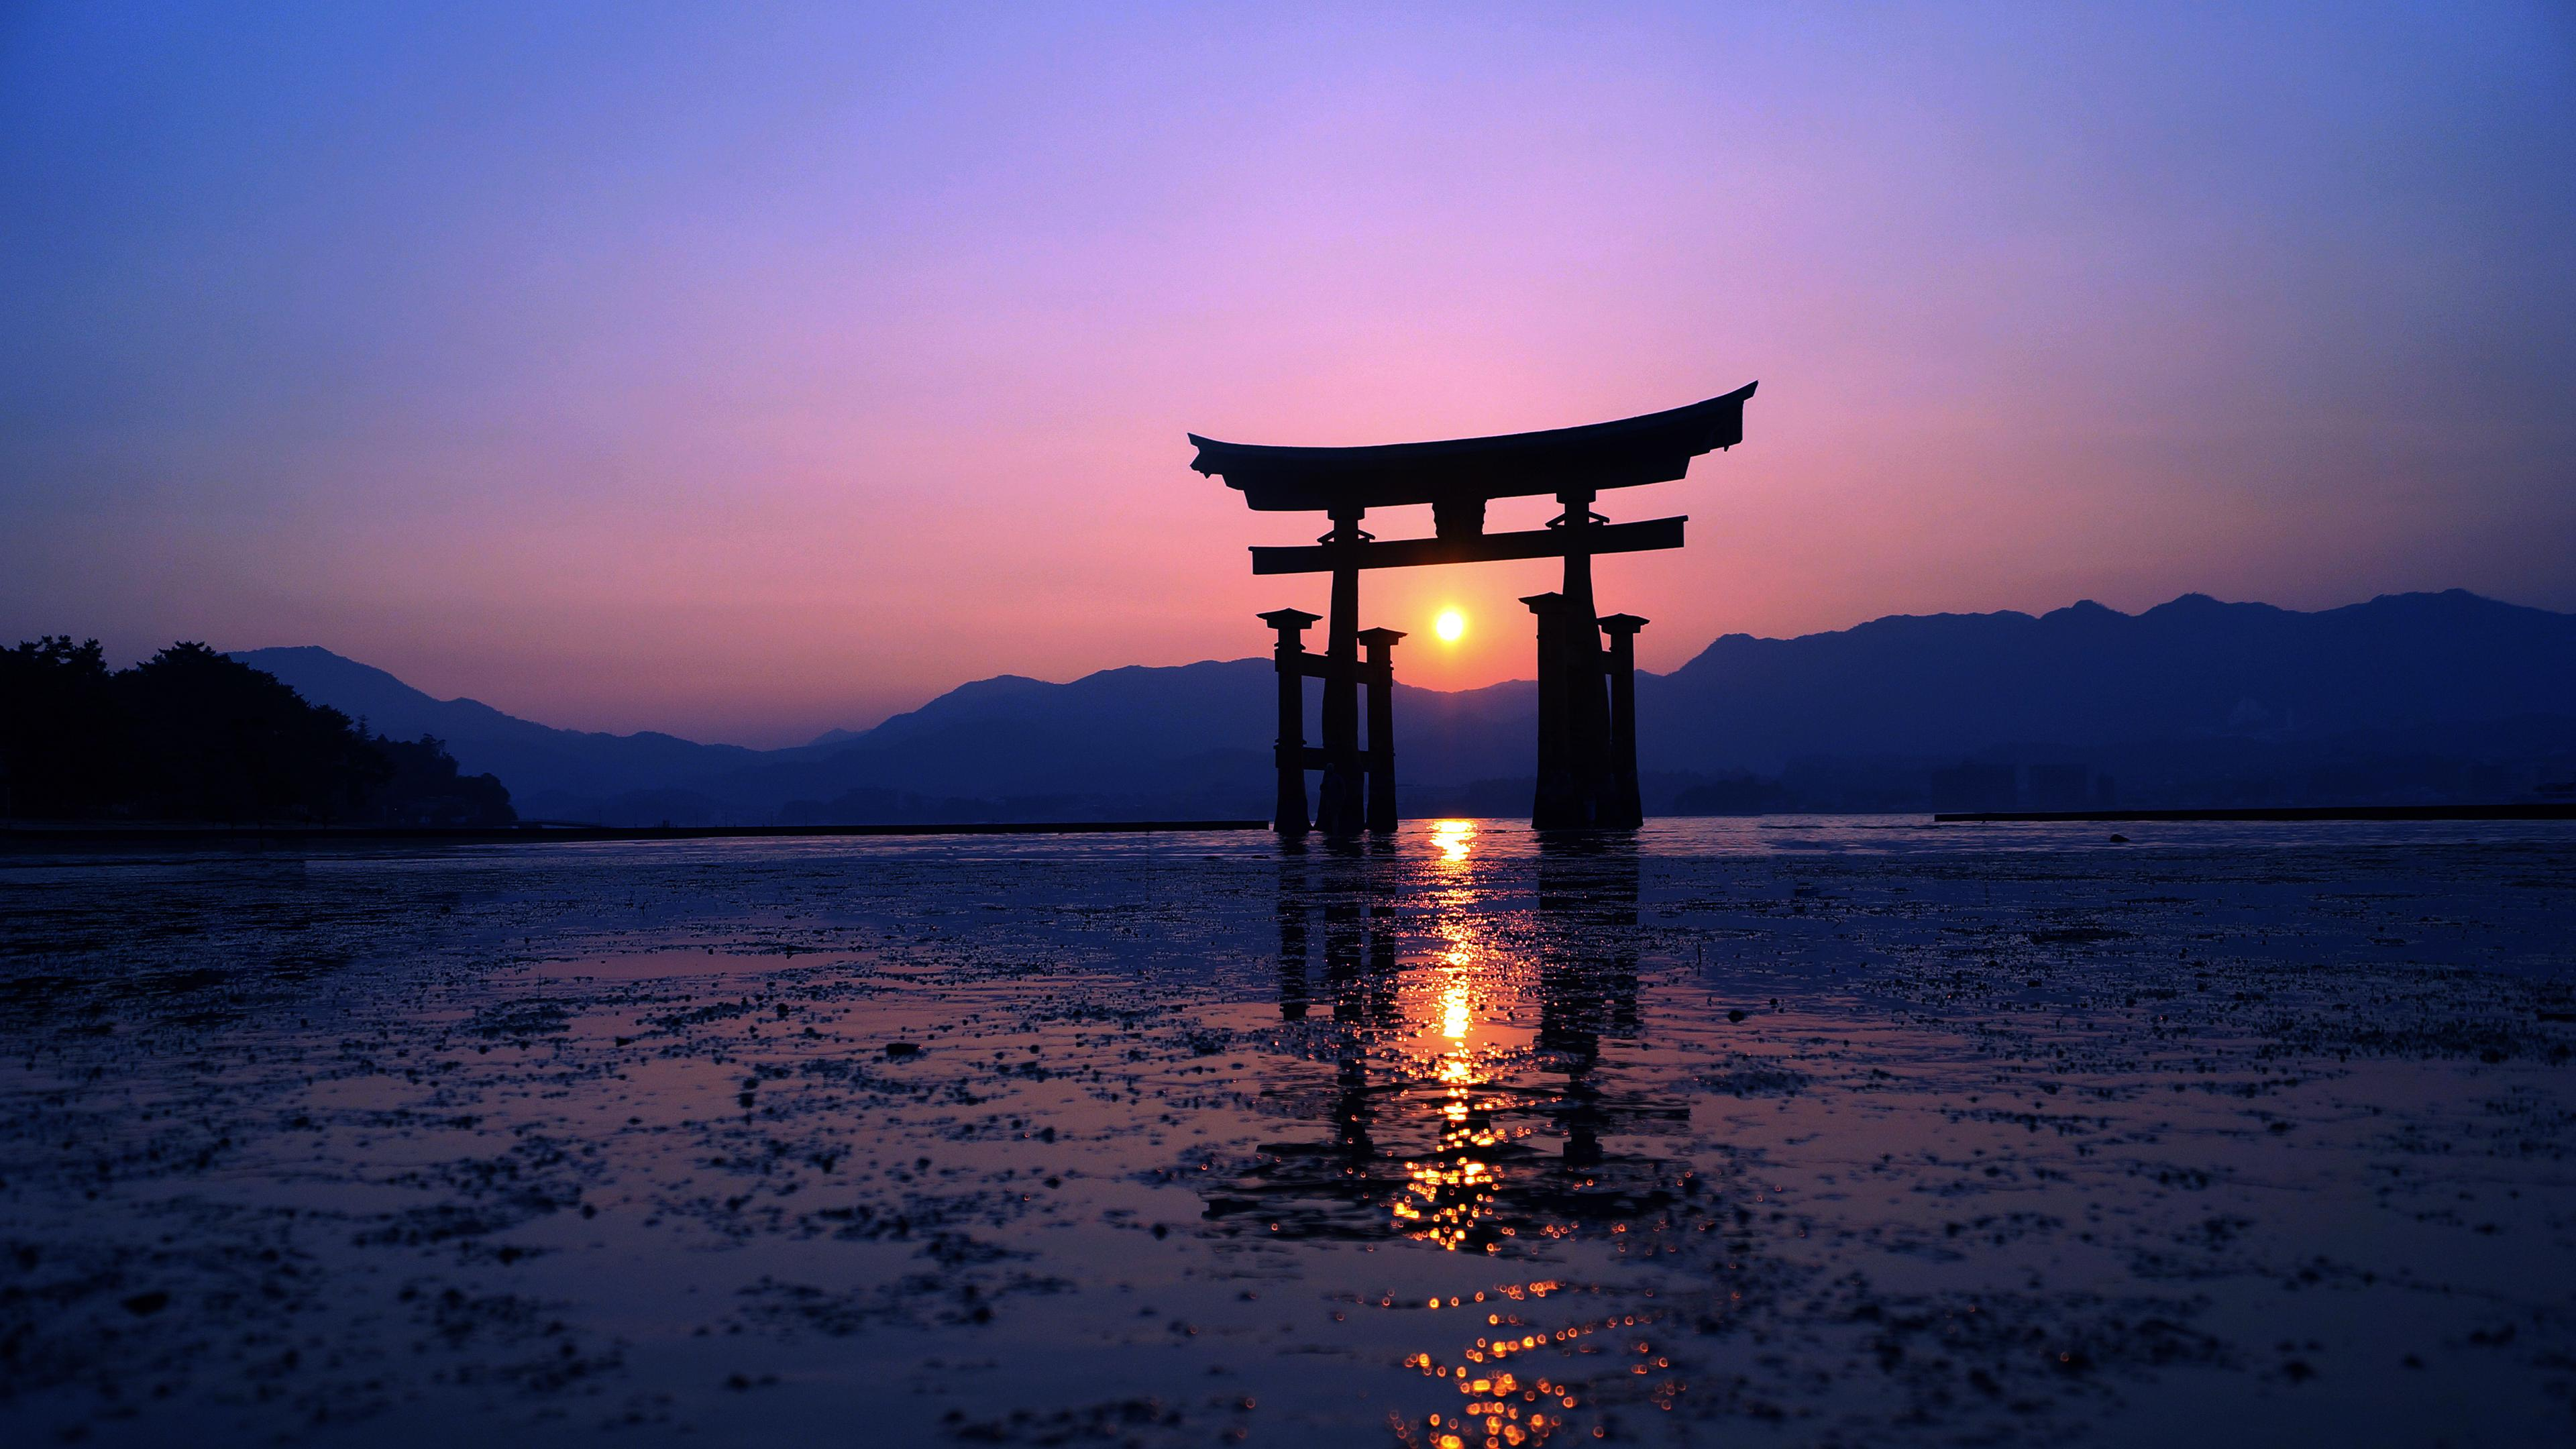 miyajima 4K wallpapers for your desktop or mobile screen and 3840x2160